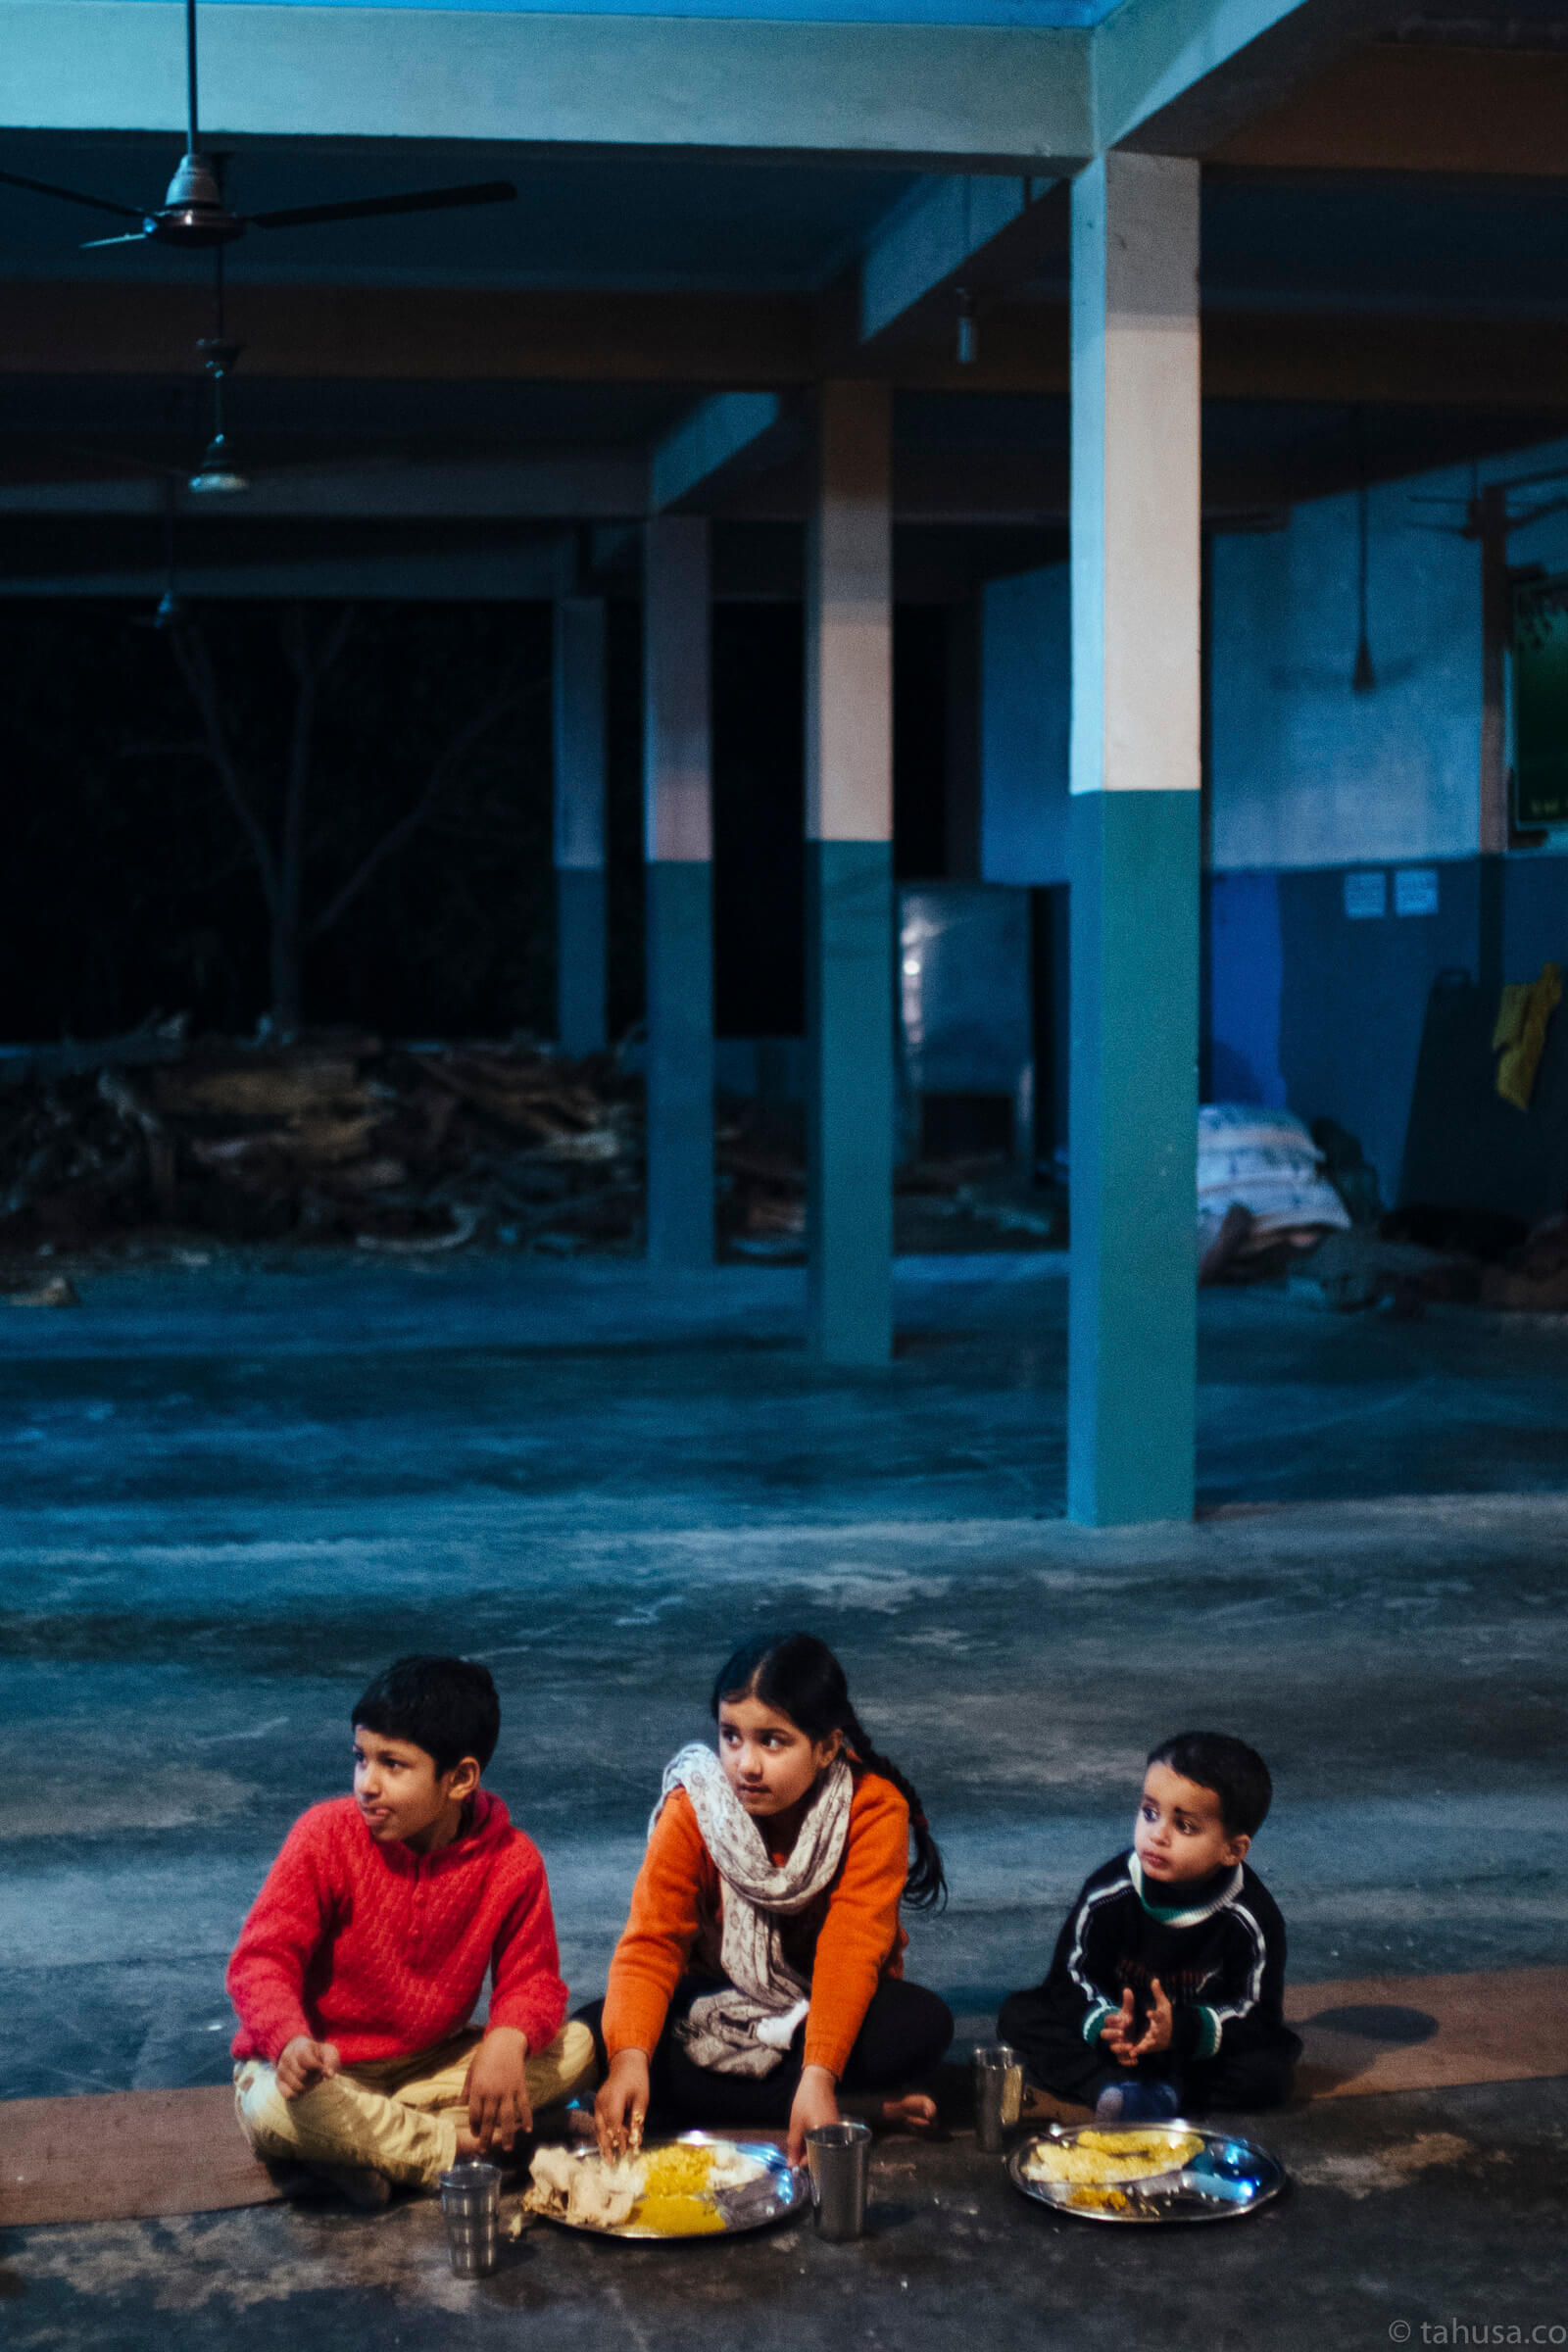 Children-asking-me-to-have-dinner-inside-temple-street-snap-city-scanner-cities-Una-India